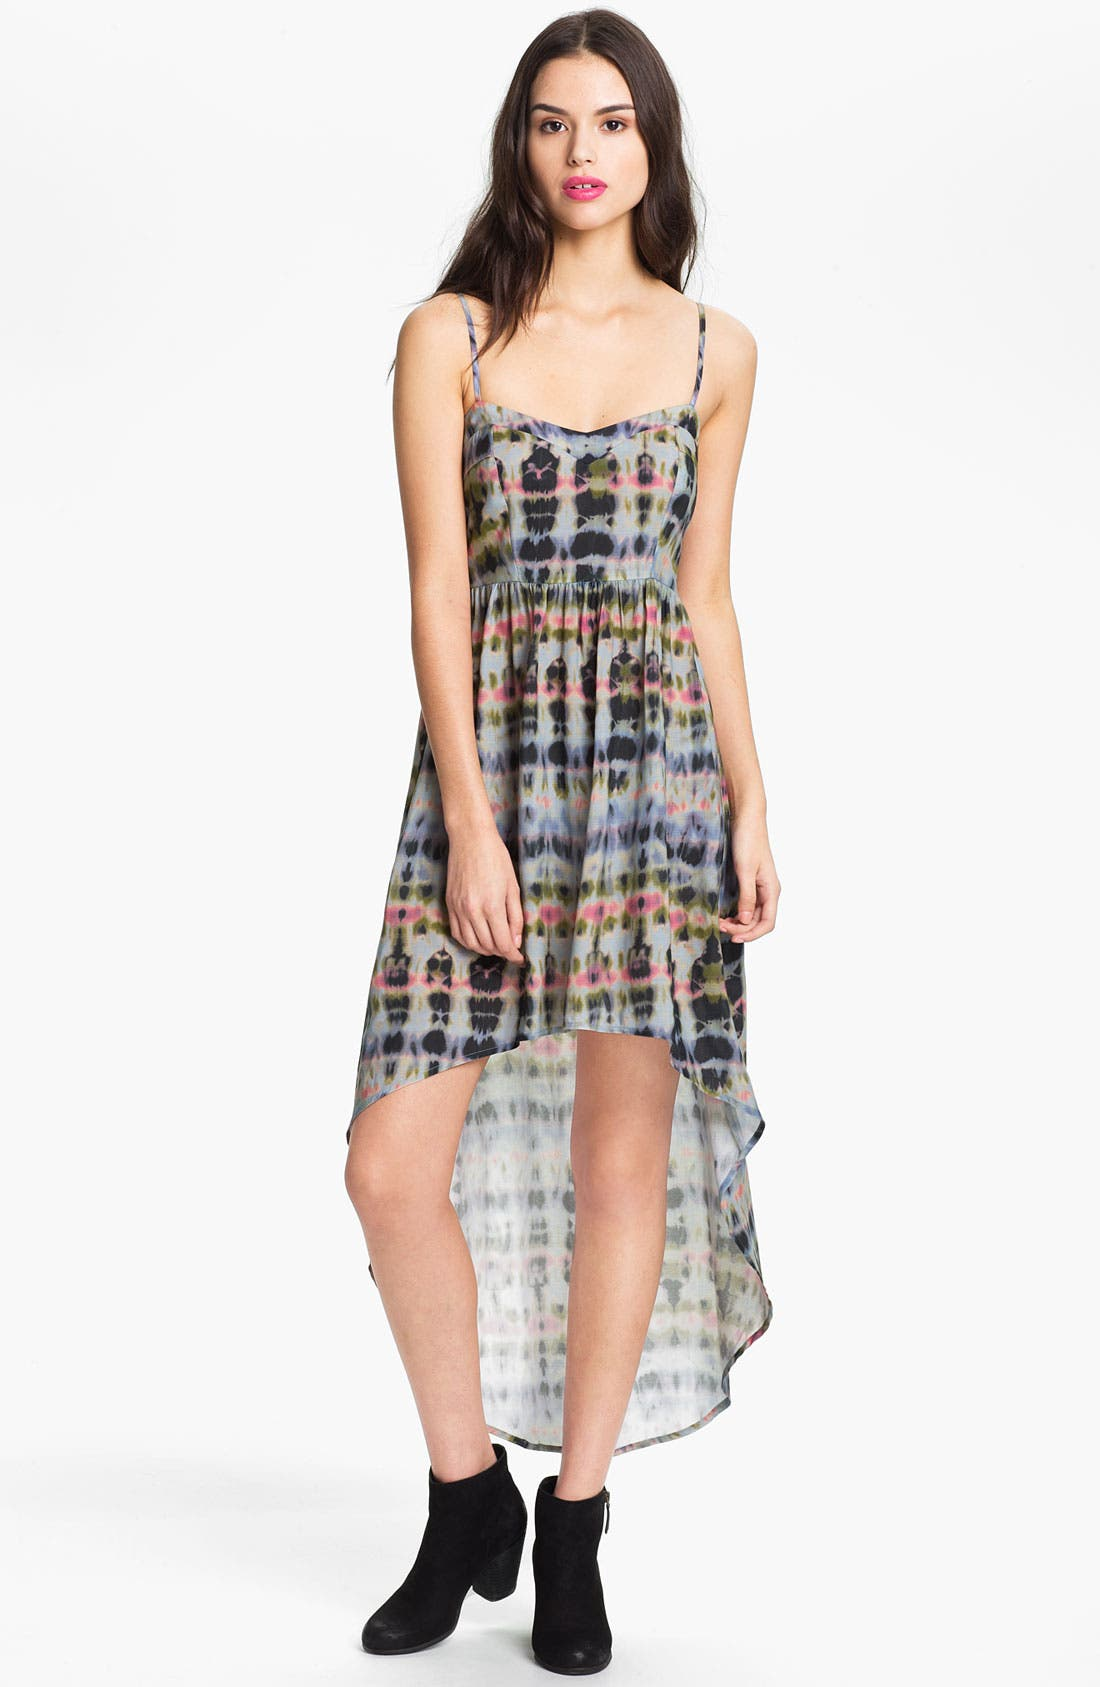 Alternate Image 1 Selected - Mimi Chica Tie Dye High/Low Dress (Juniors)